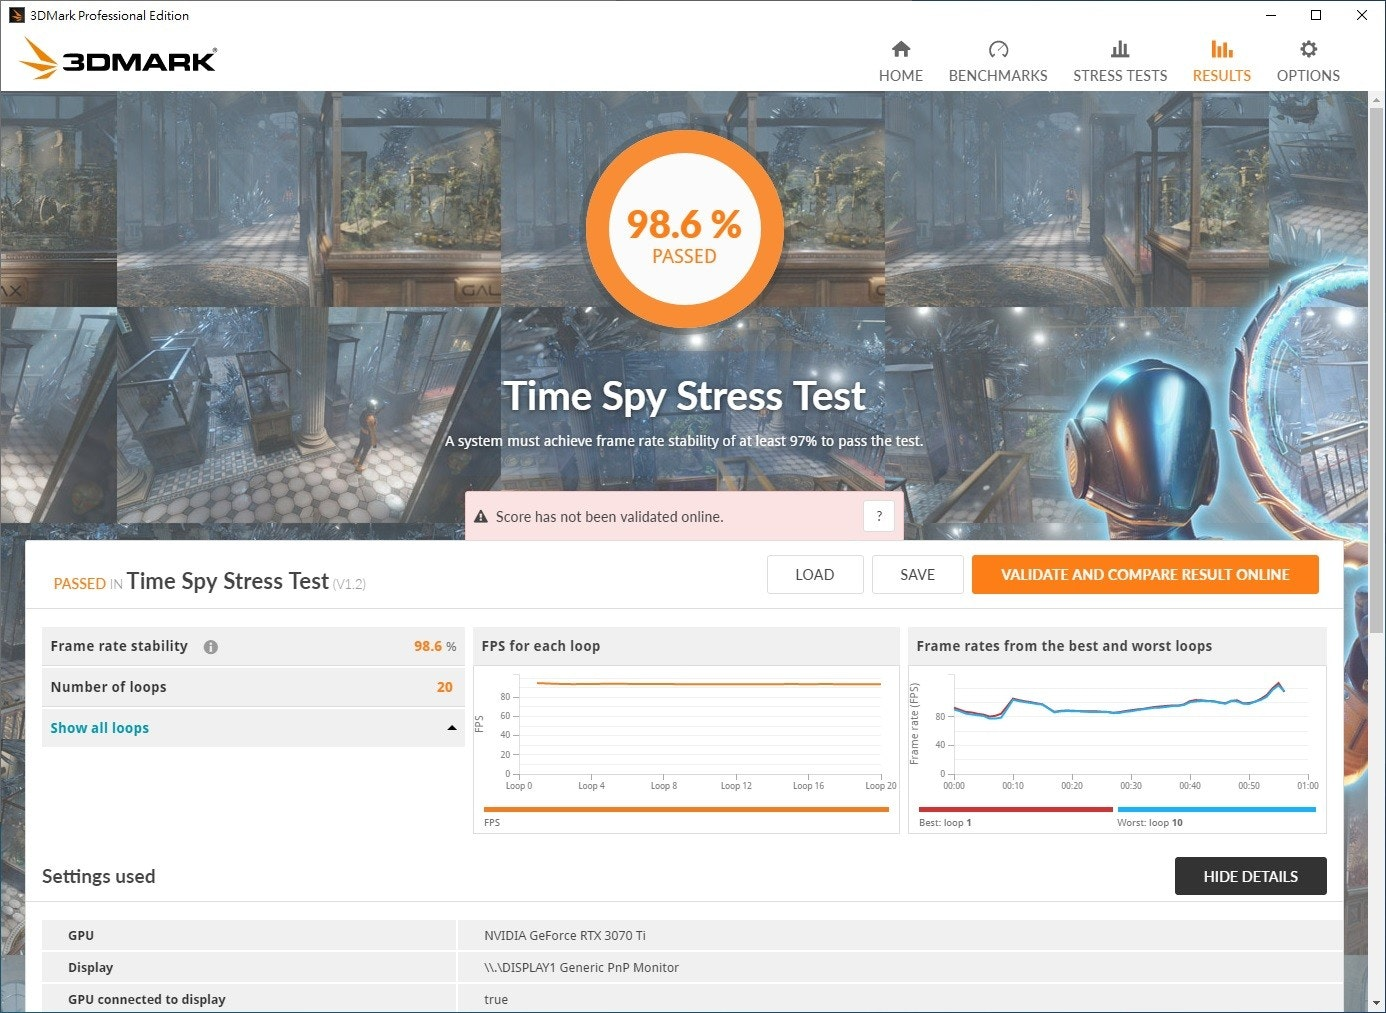 3DMark Professional Edition, 3DMARK, НОМЕ are mentioned in the photo, including gtx 1070 spy score, NVIDIA GeForce GTX, MSI GeForce GTX 1070 Gaming Z 8g, 8GB GDDR5, MSI International, 3DMark